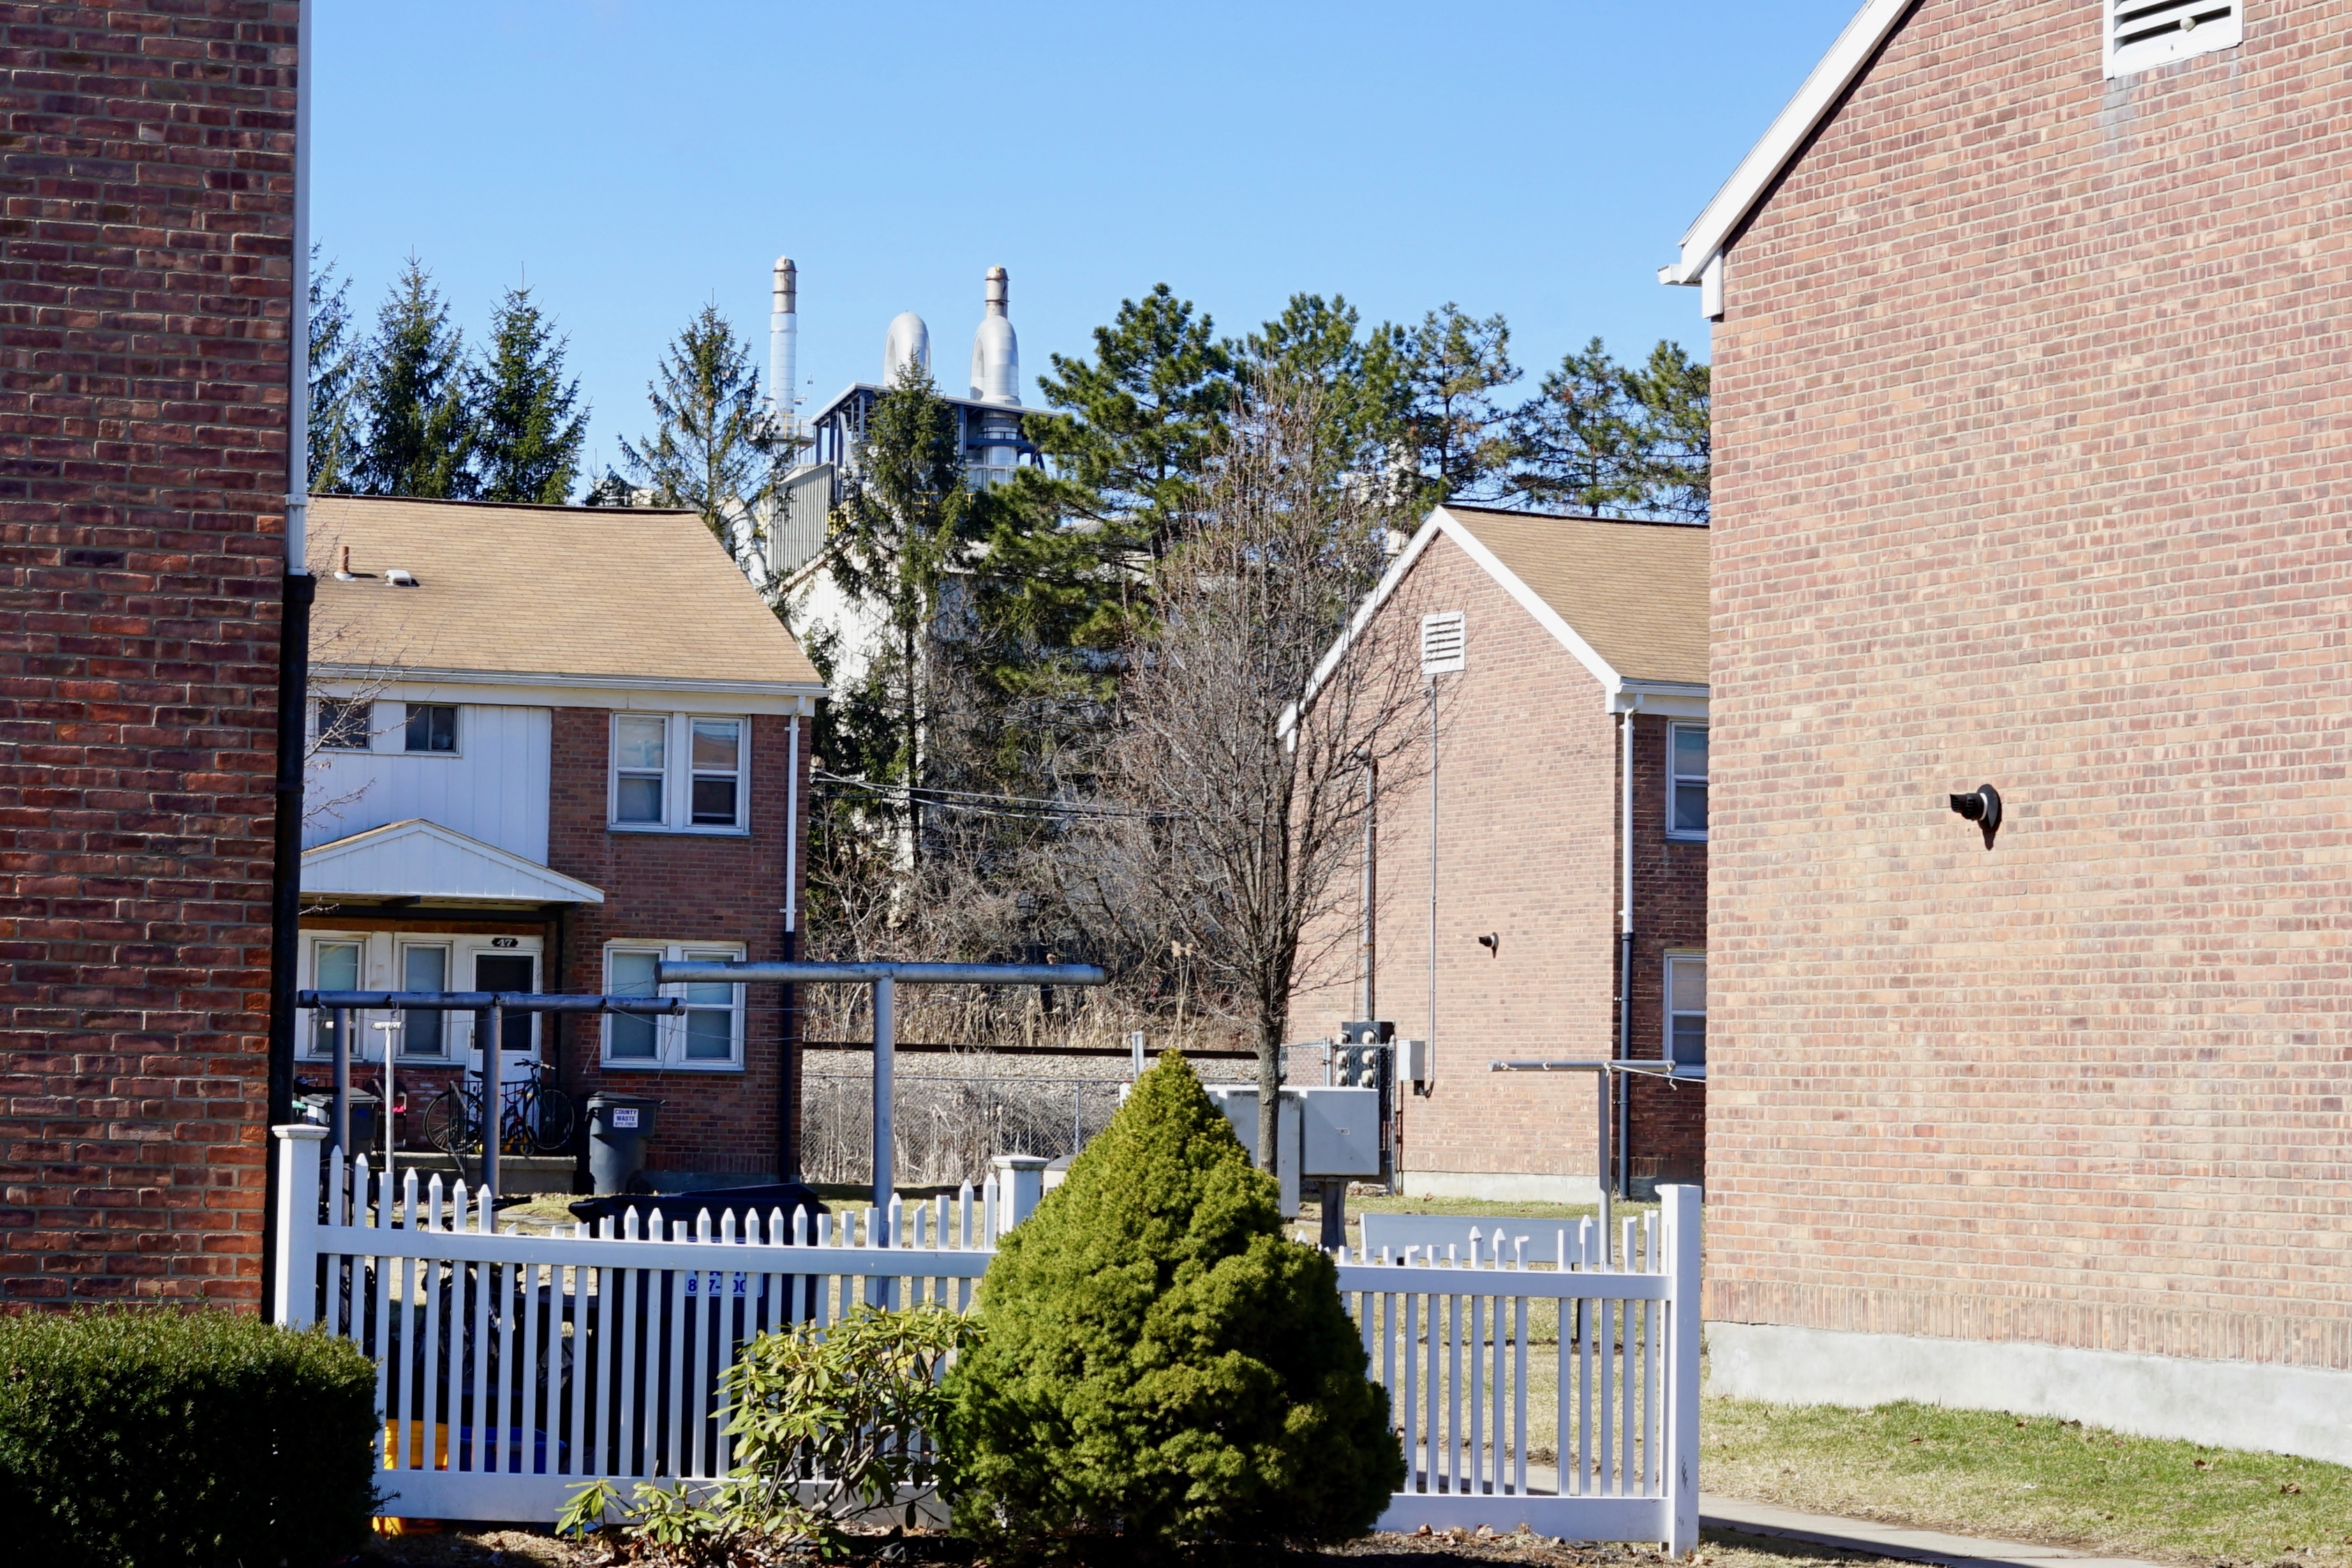 Caption: Norlite hazardous waste incinerator looms over Saratoga Public Housing Complex in Cohoes, NY (photo by David Bond)